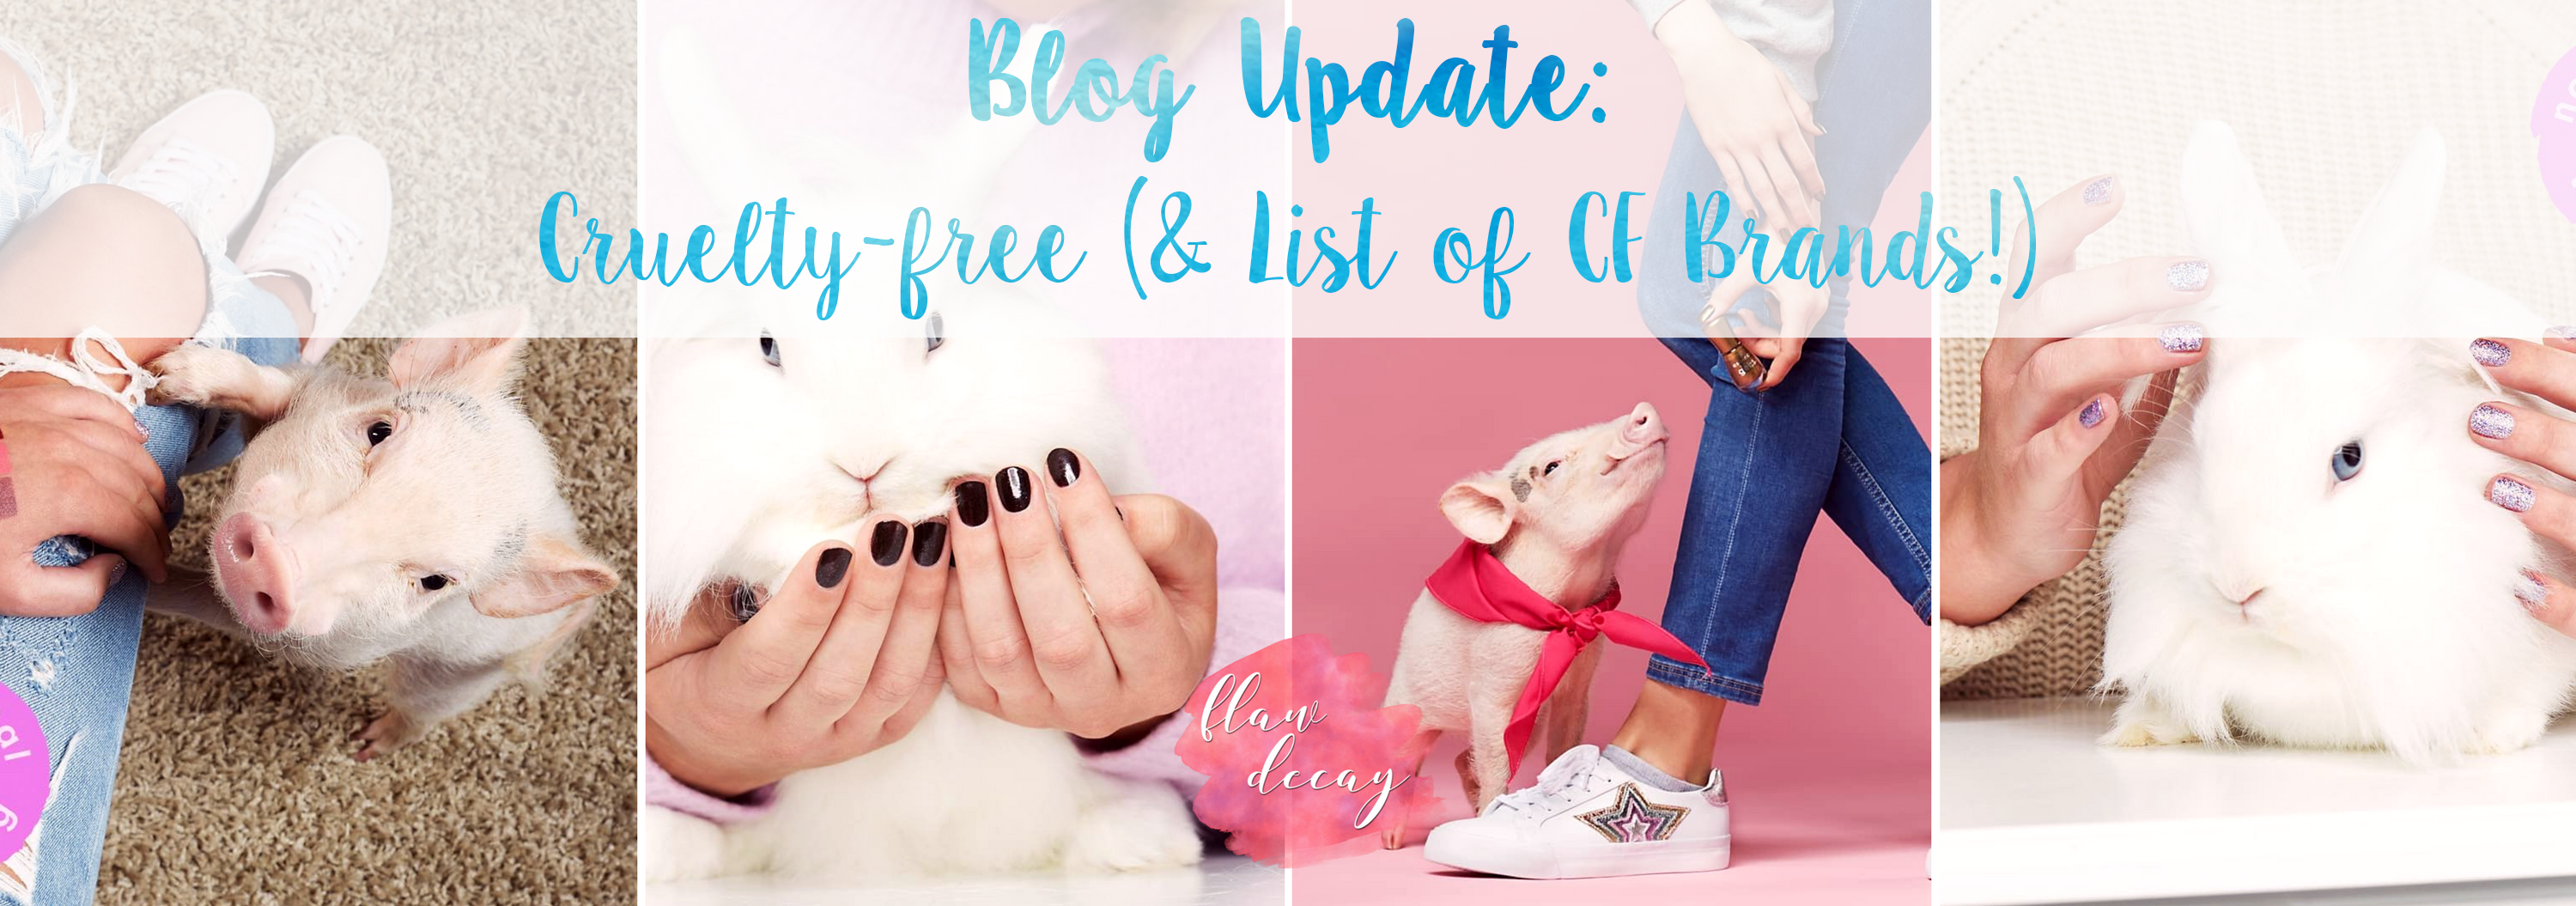 Blog Update: Cruelty-free (+List of CF Brands!)